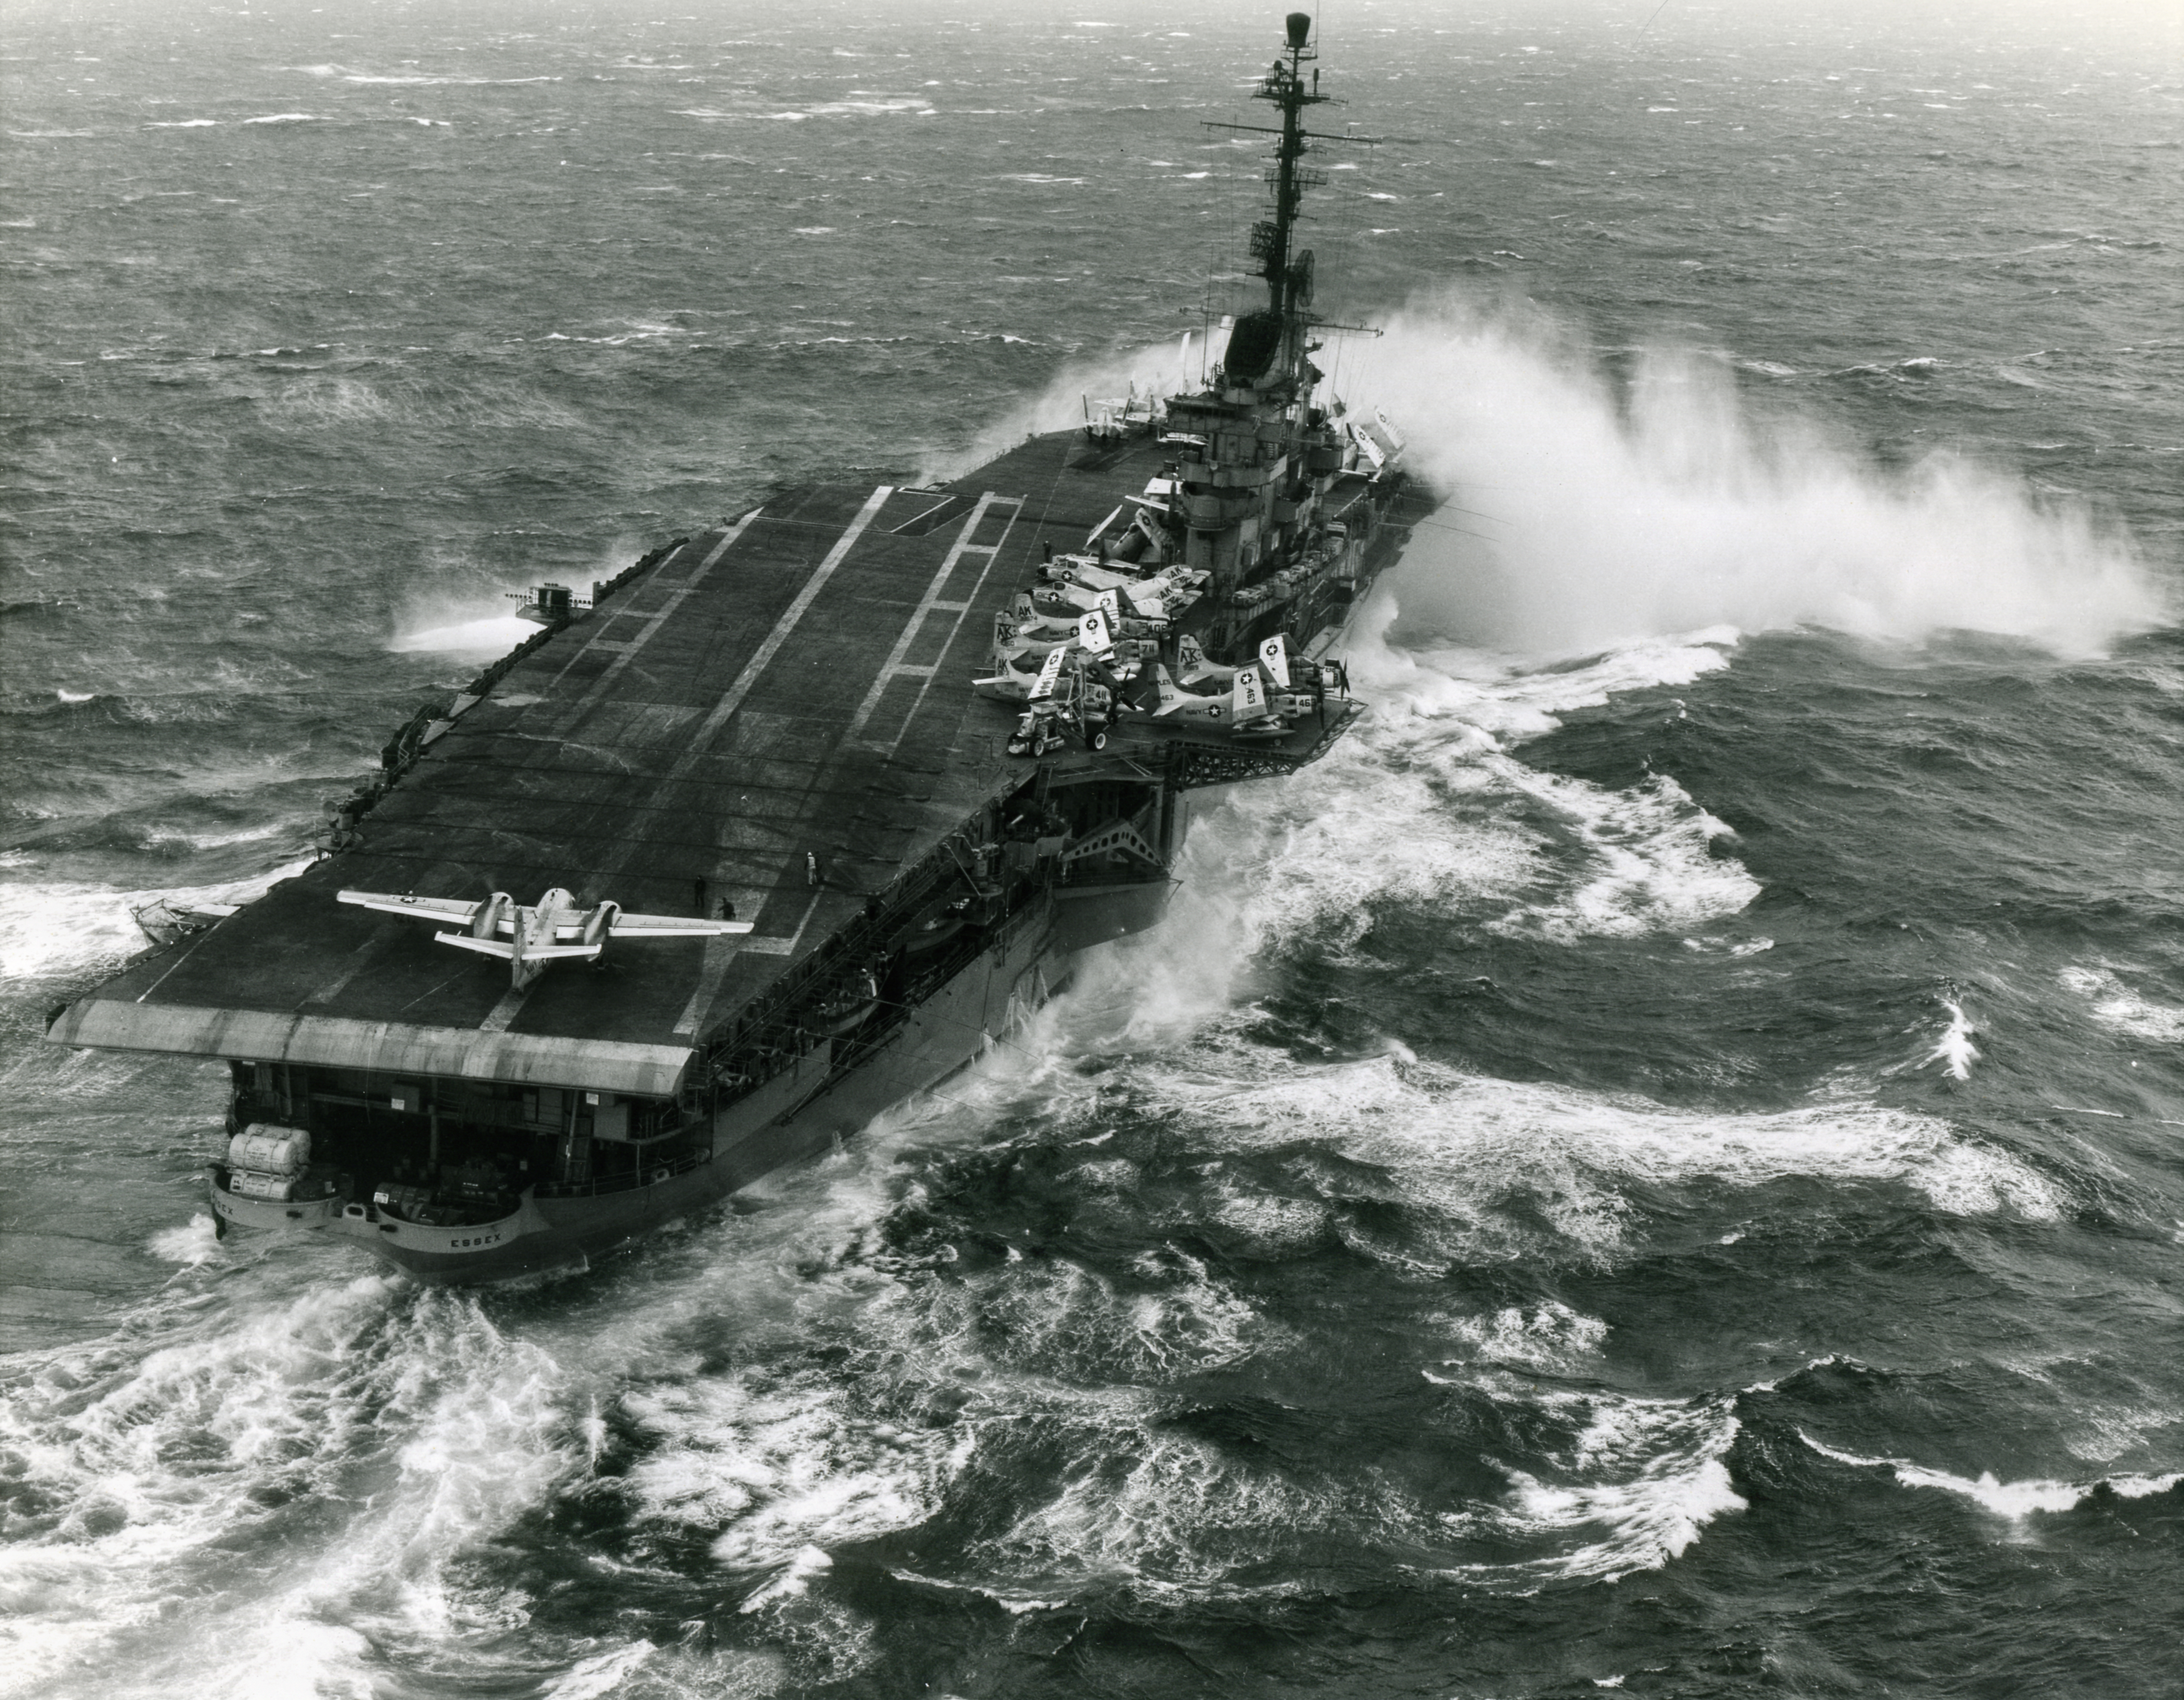 Takes spray over the bow while steaming in heavy seas, 12 January 1960. Note S2F type airplane at the rear of the flight deck, with its engines turning. Other planes visible, amidships, include AD and F4D types. Official U.S. Navy Photograph, from the collections of the Naval Historical Center.